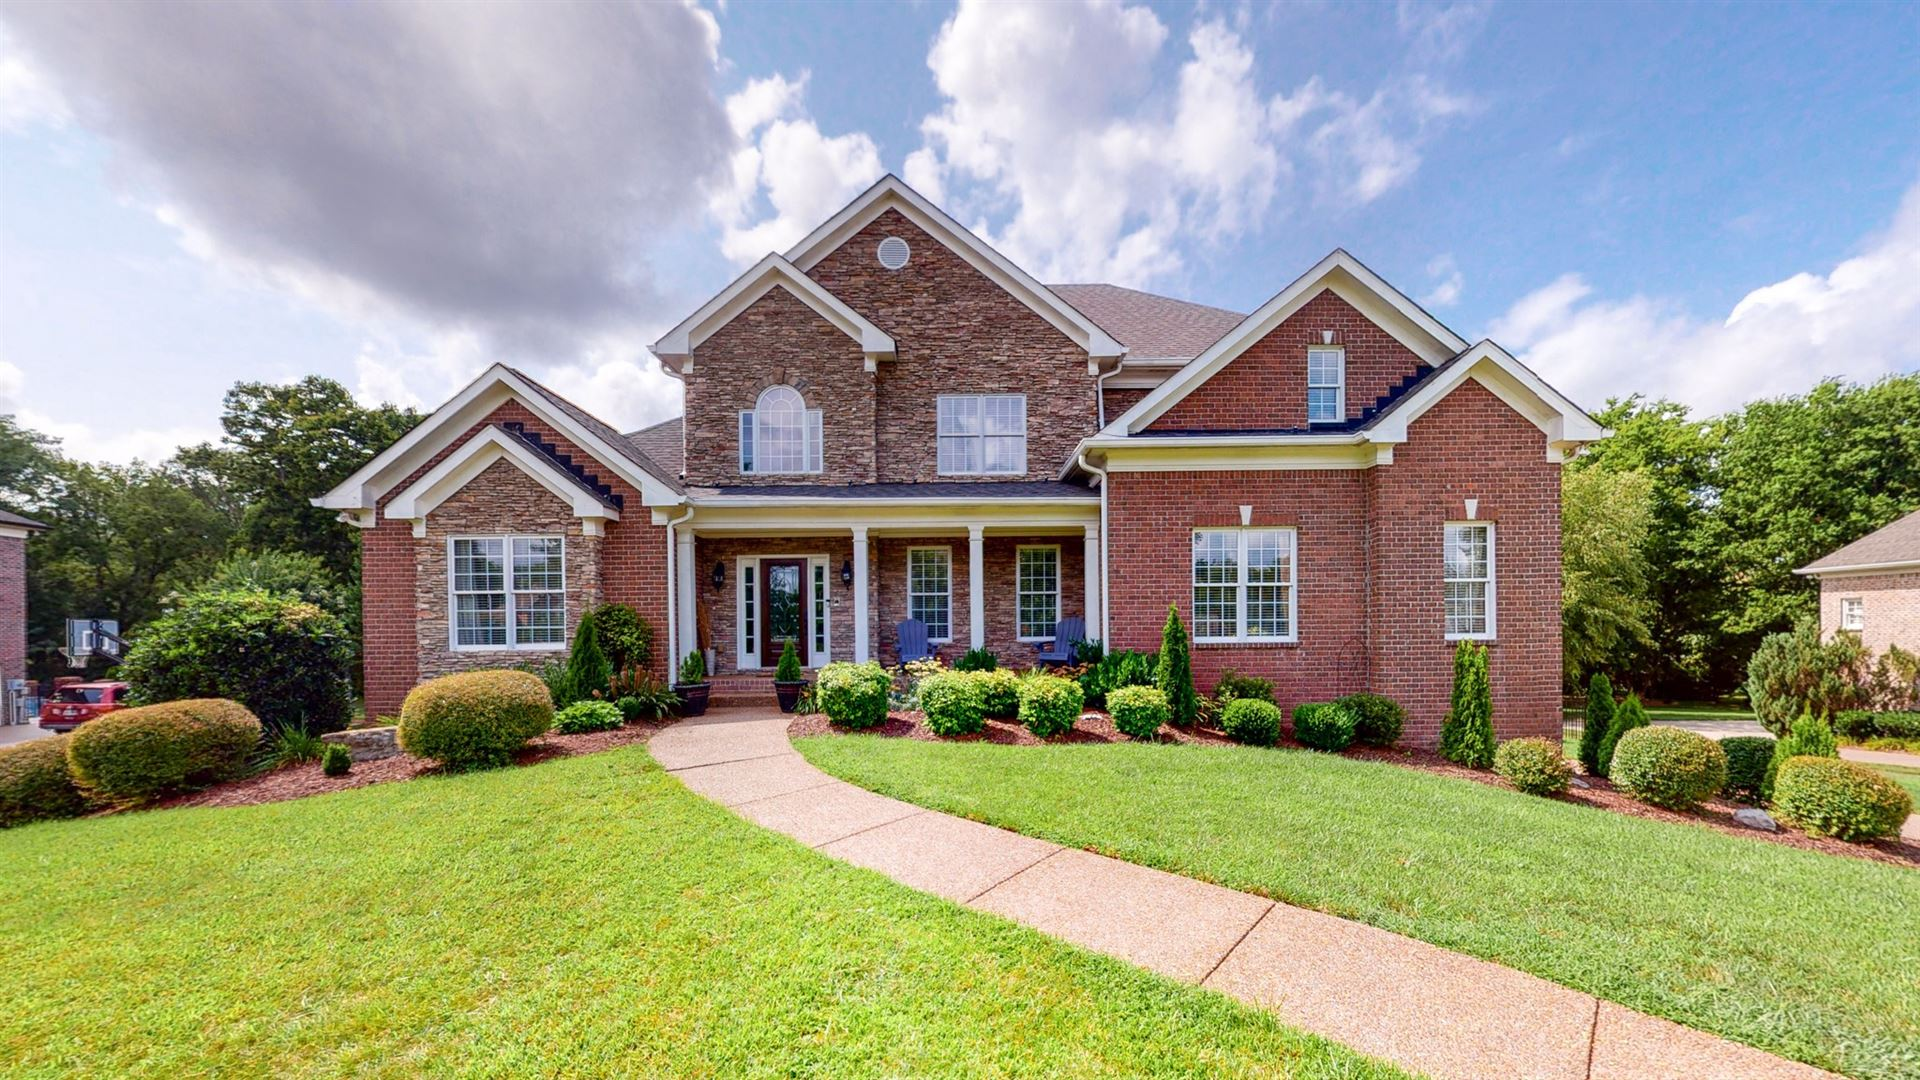 8214 Holly Rd, Brentwood, TN 37027 - MLS#: 2273962